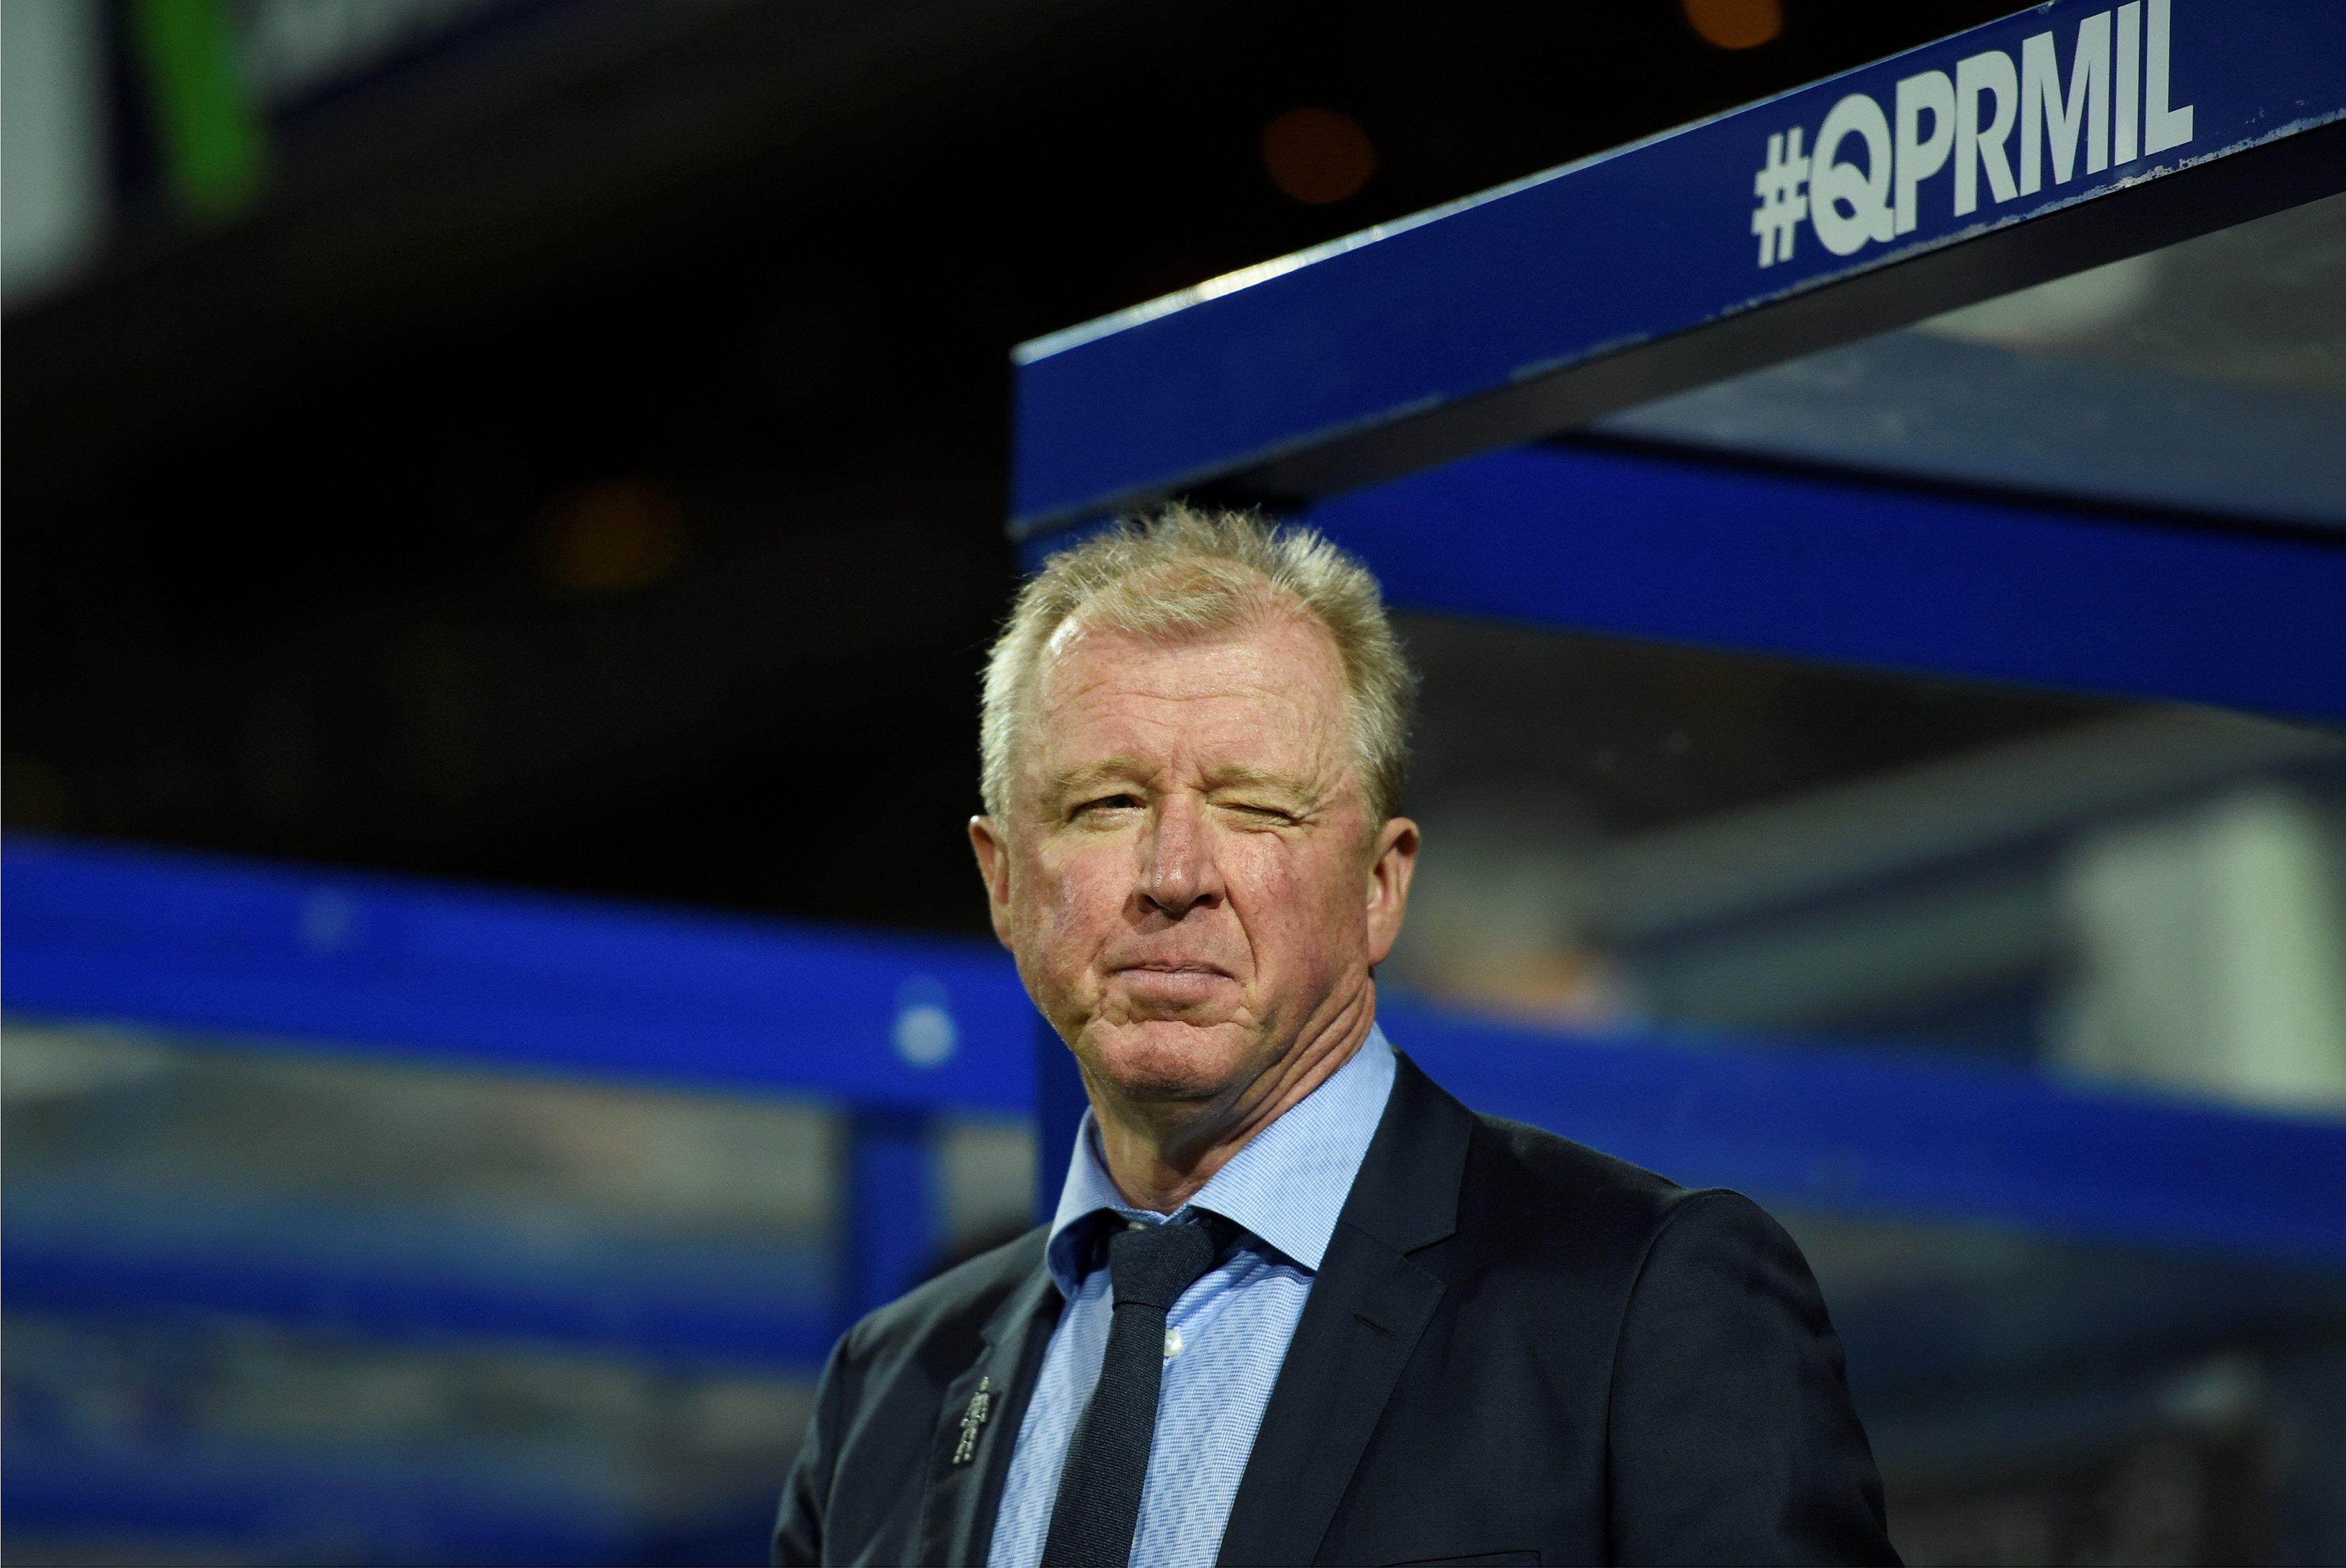 Steve McClaren has turned QPR's fortunes around drastically after a poor start